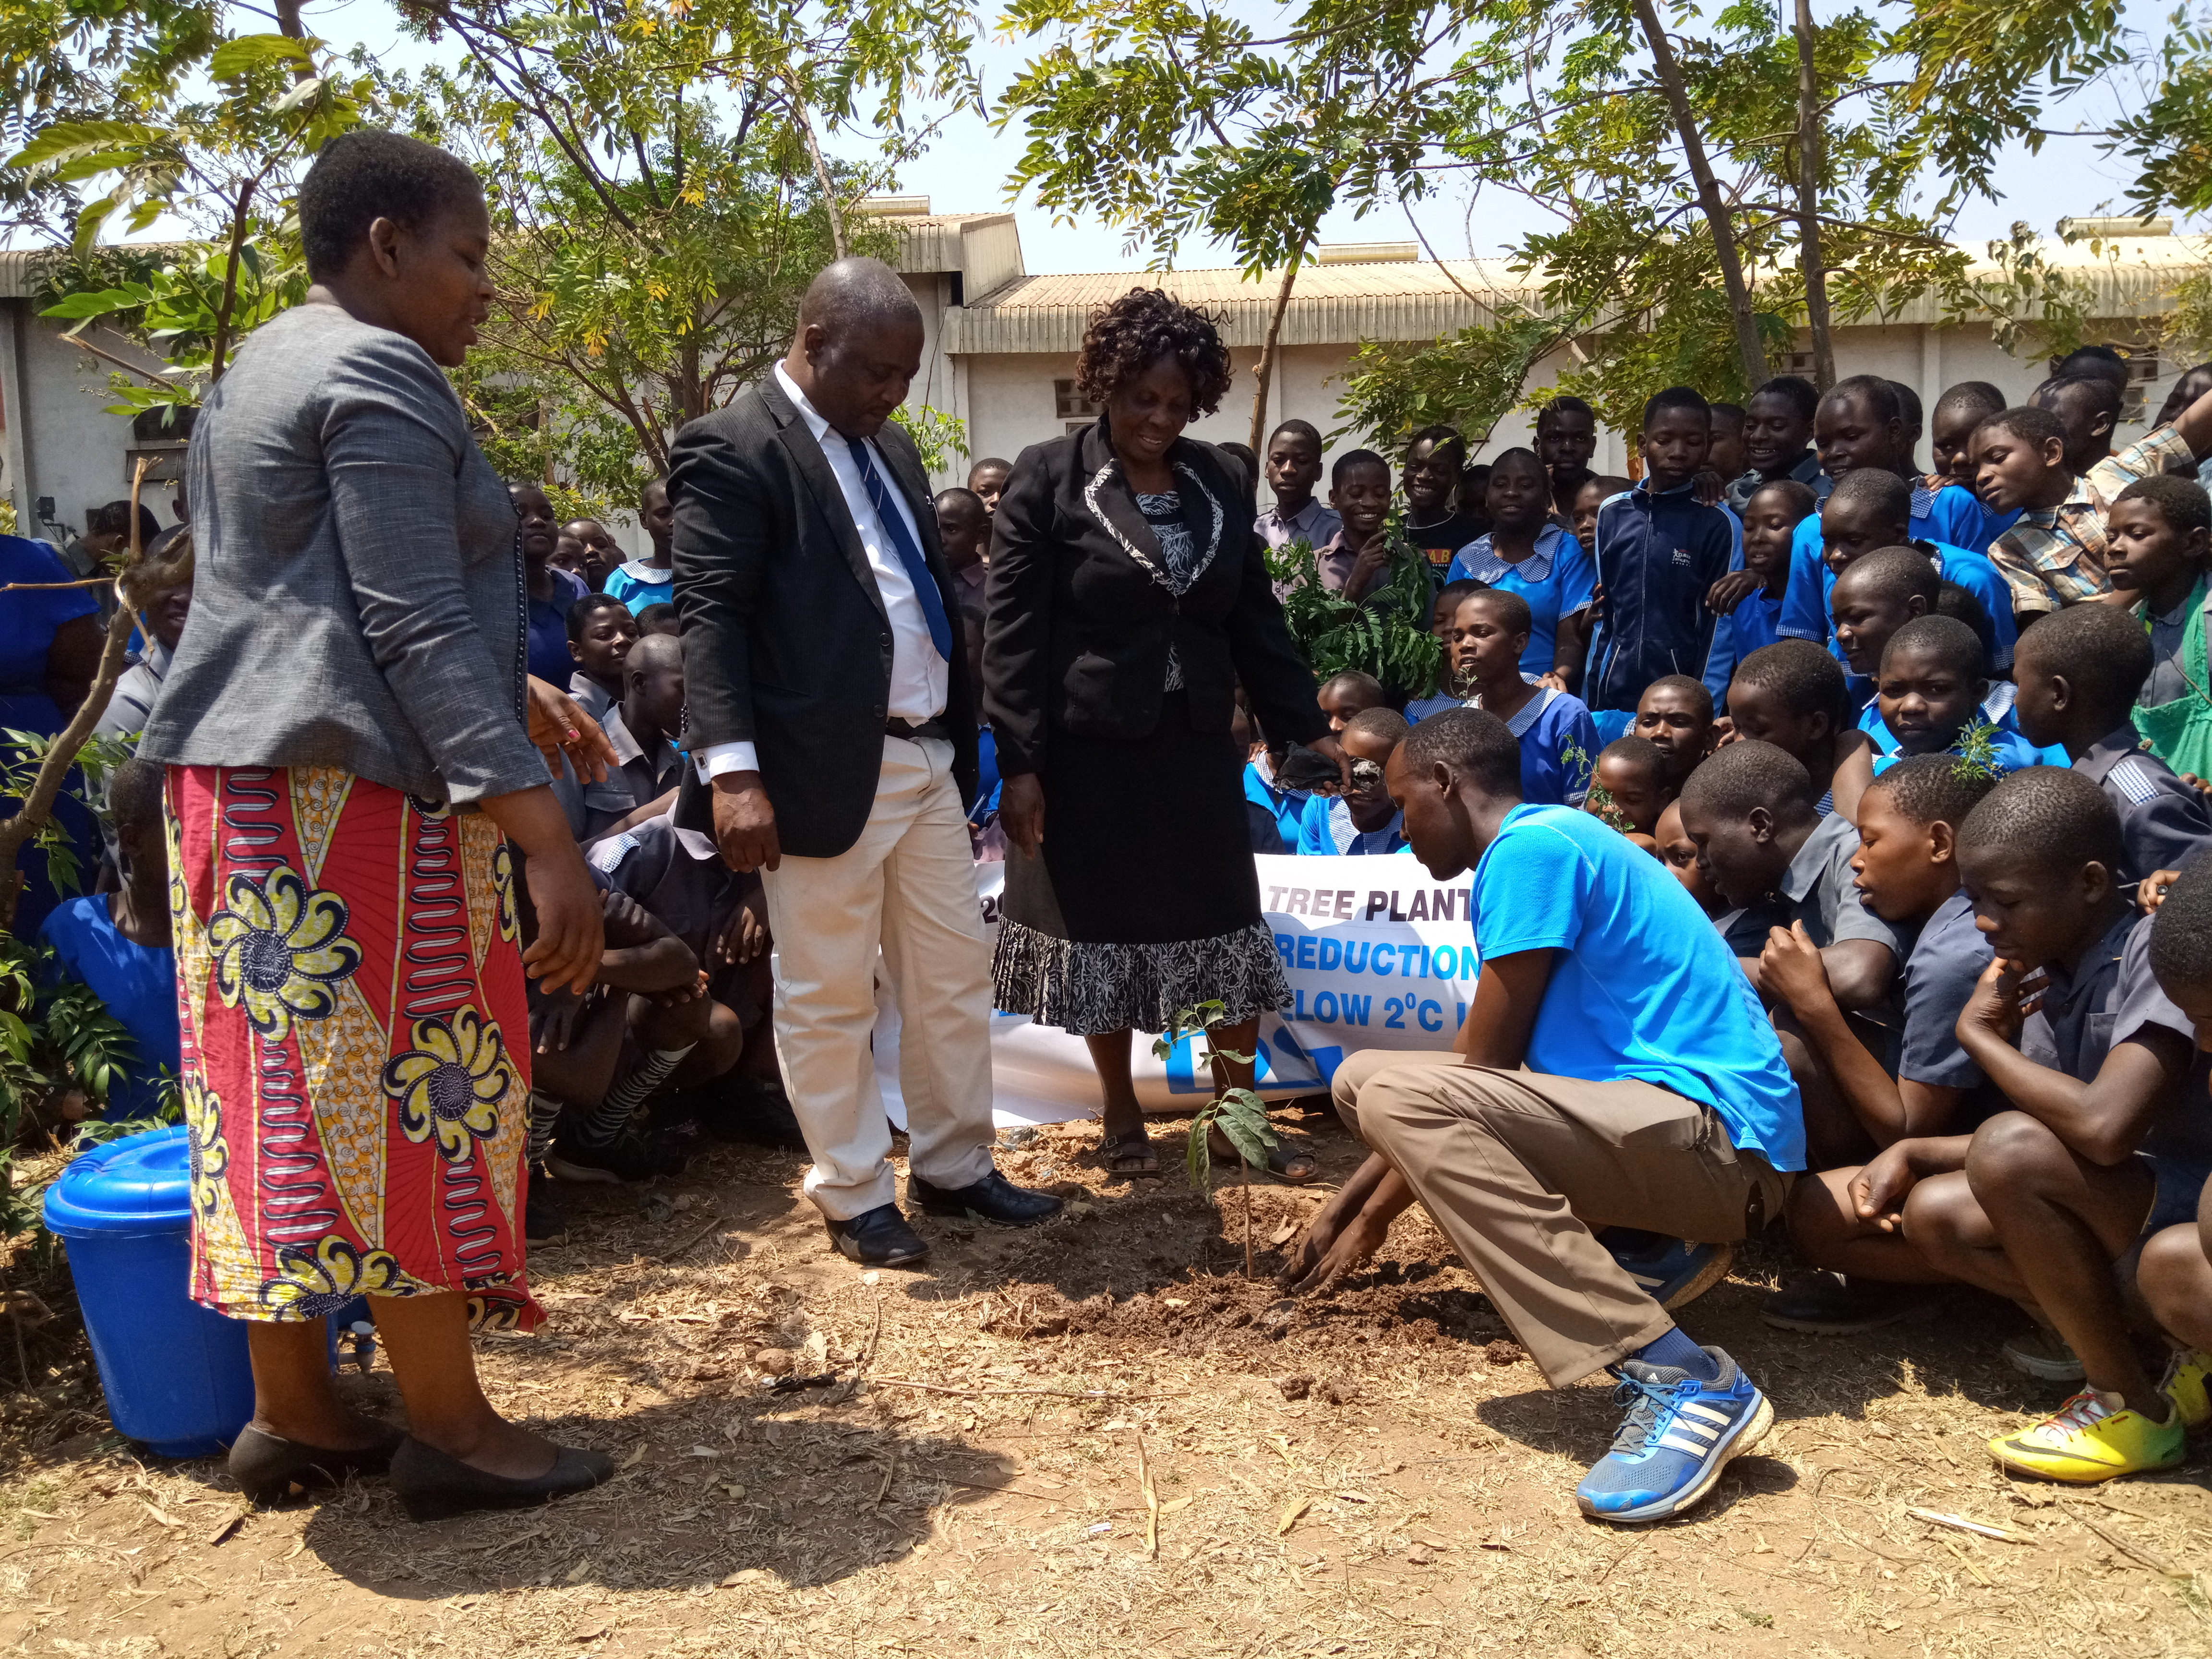 Kenyan Athlete Embarks on Worldwide Tree Planting Campaign: Plants Trees in Malawi